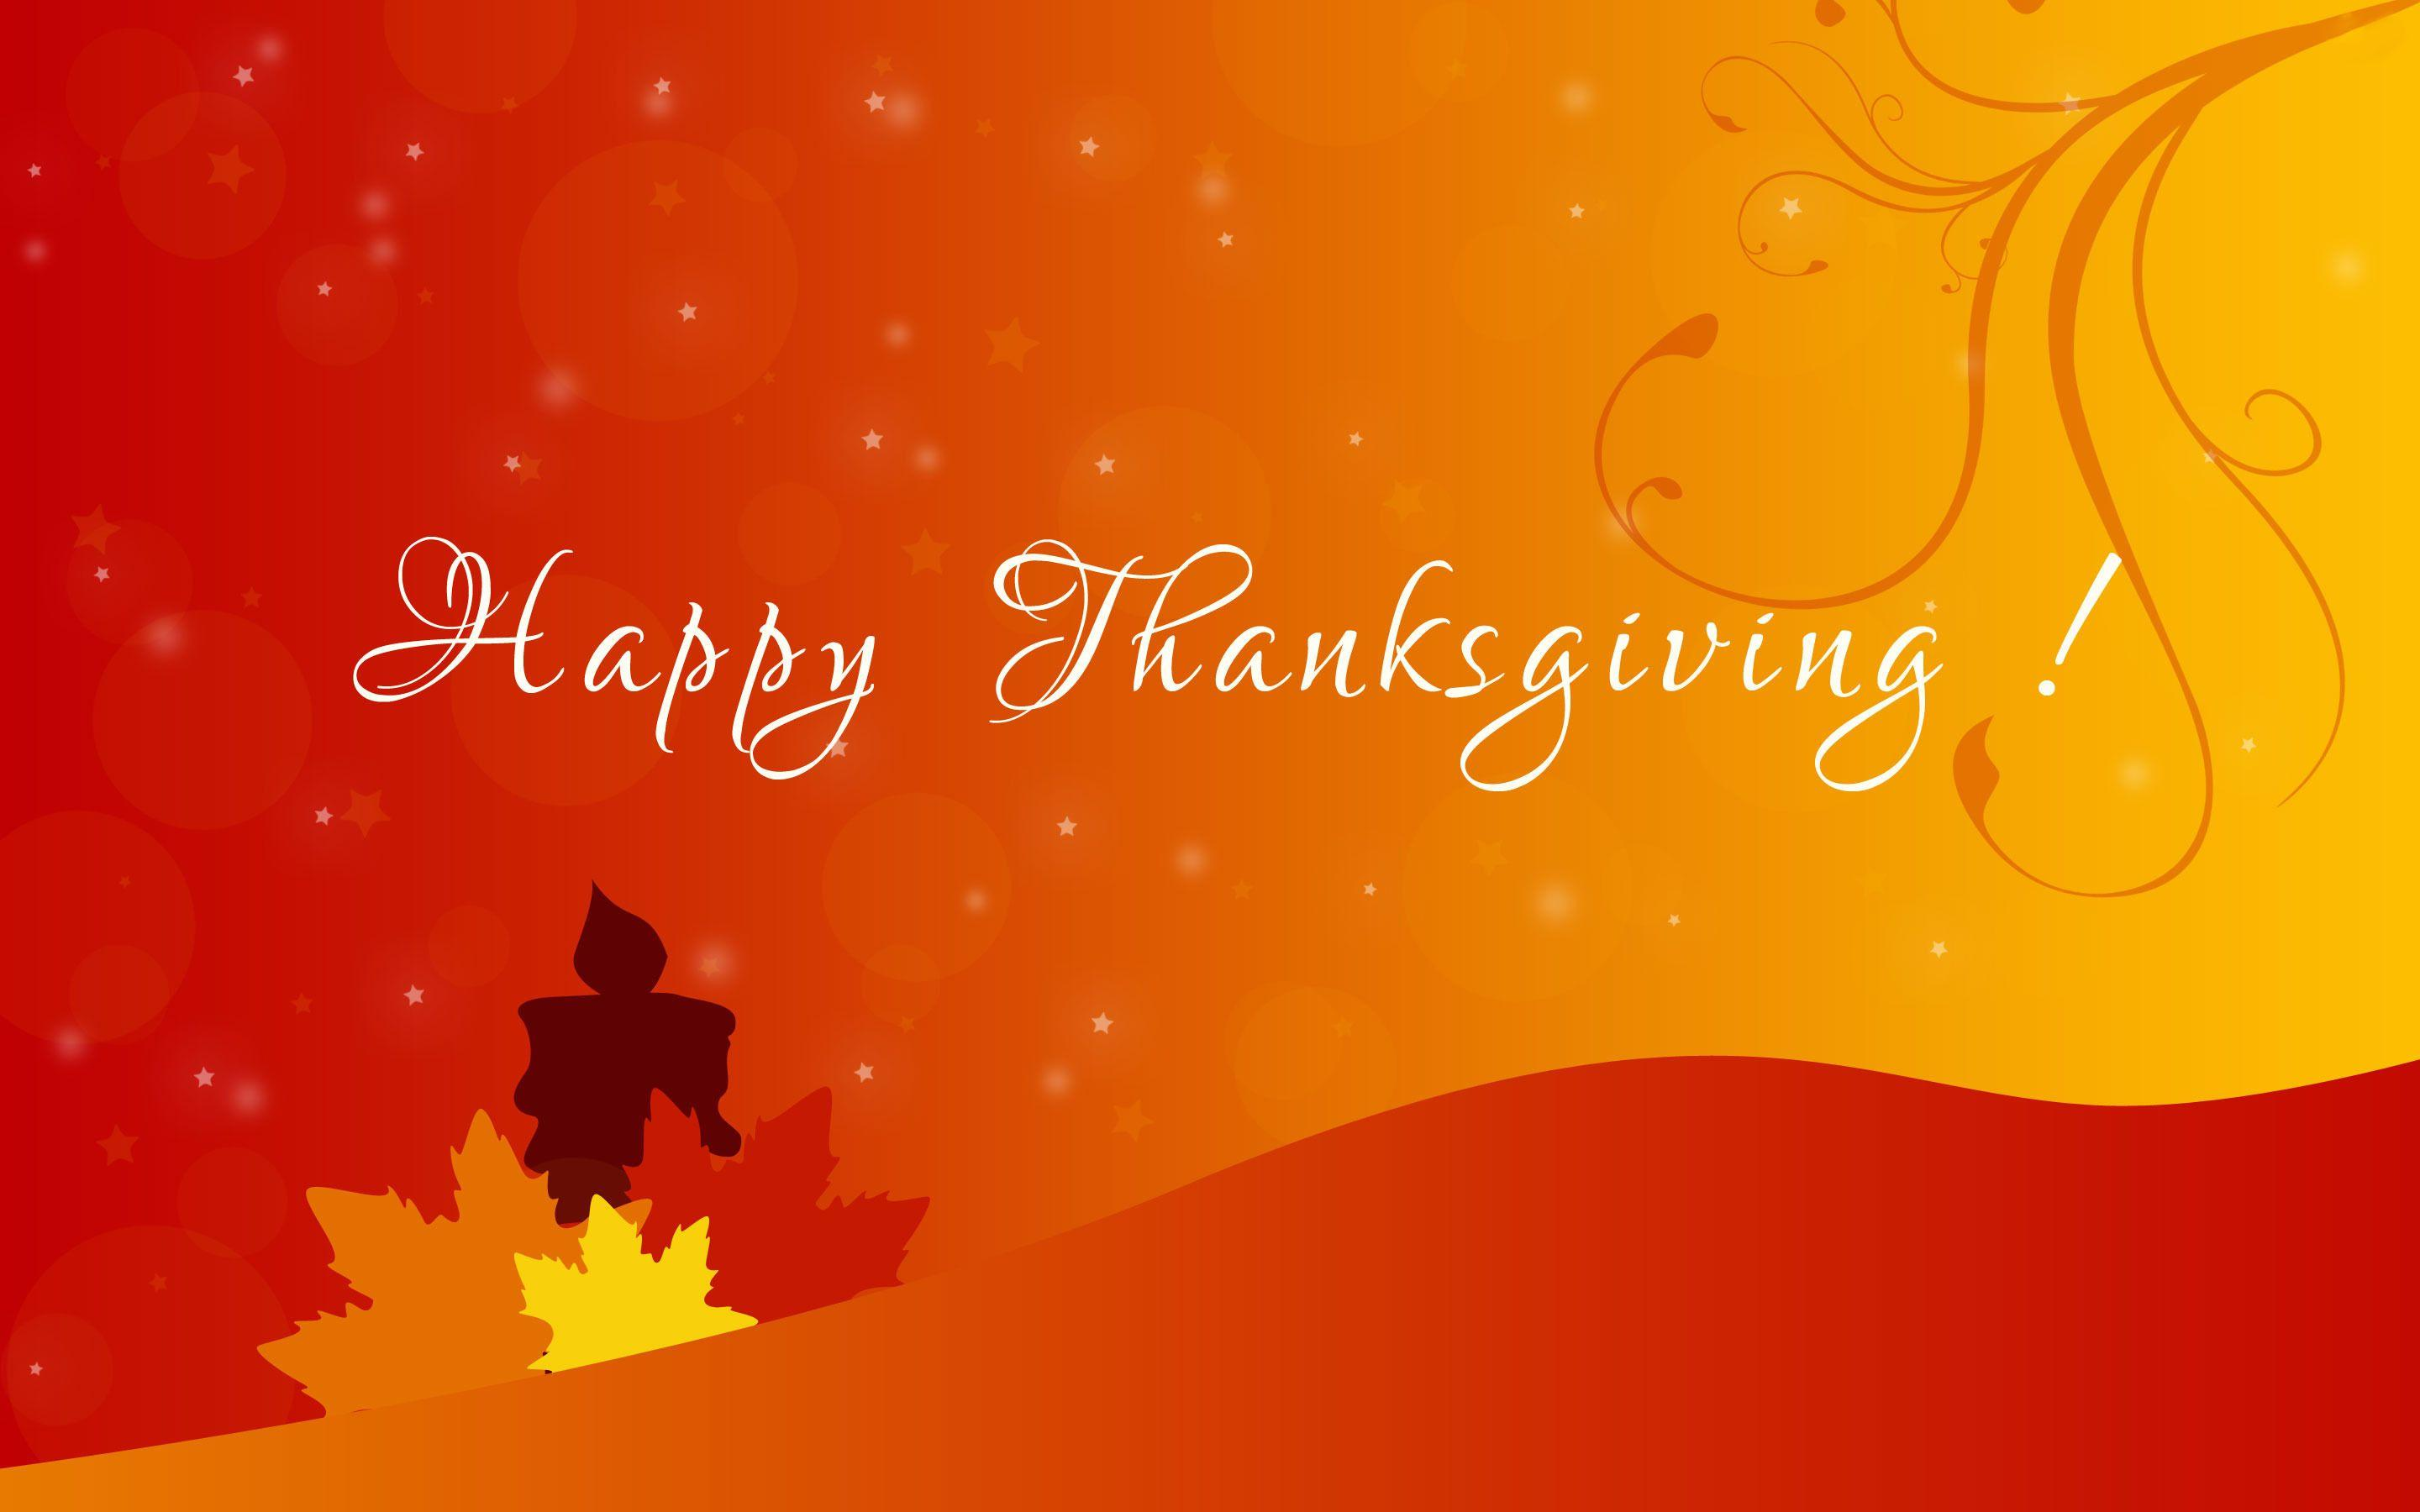 Free Thanksgiving Wallpapers HD Download